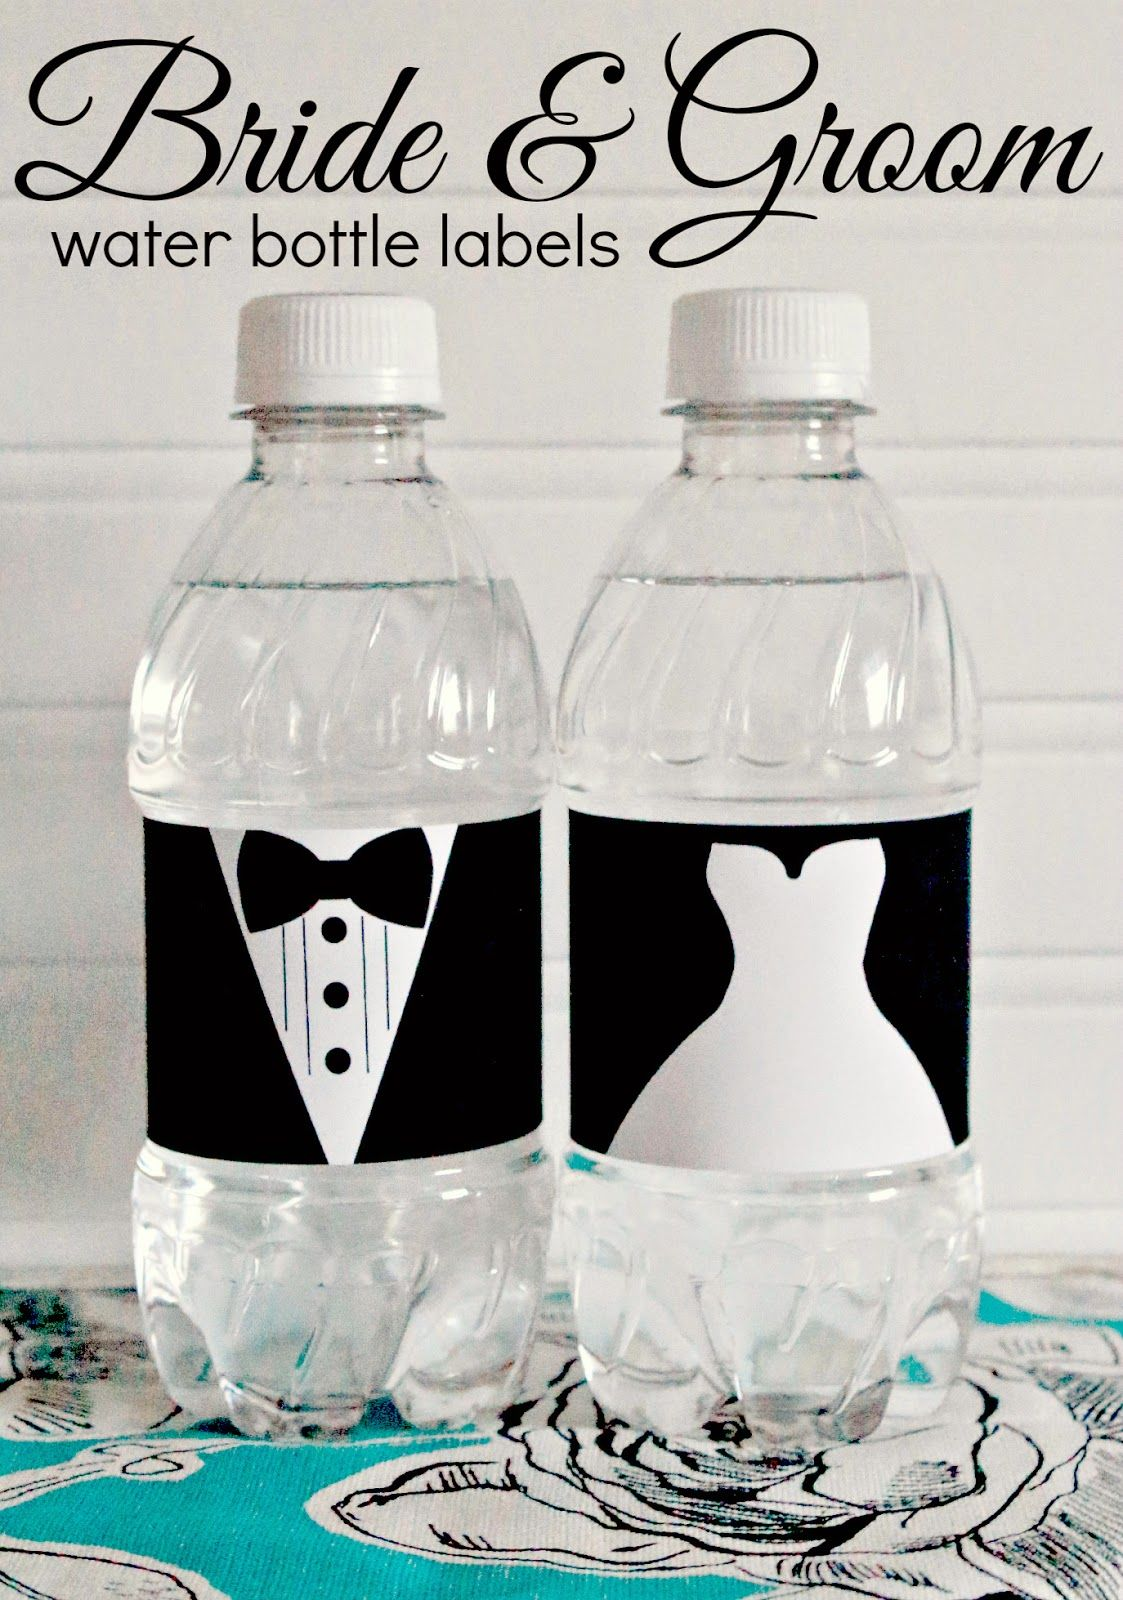 Wedding Water Bottle Labels.Free Printable Bride And Groom Wedding Water Bottle Labels